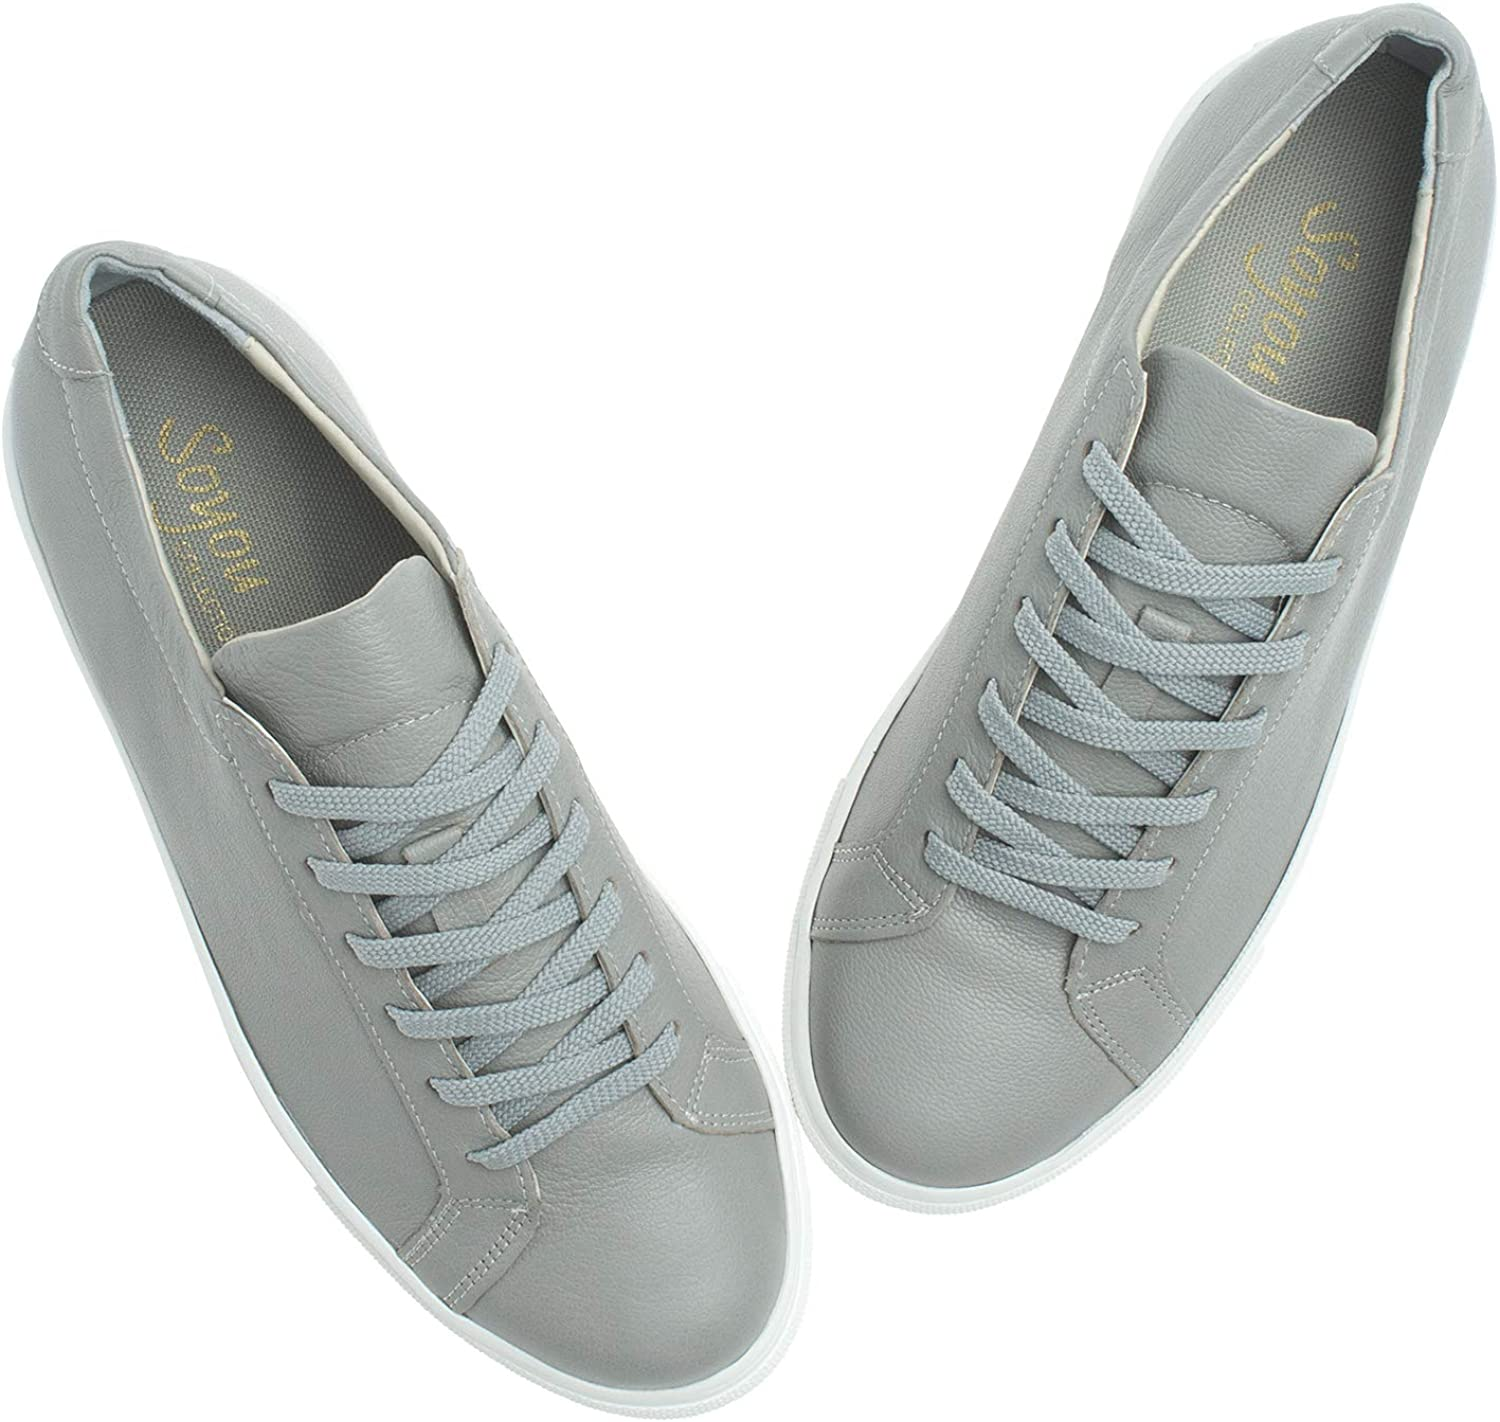 AnnaKastle Womens Fashion Leather Sneaker Lace Up Low Top Casual Trainer